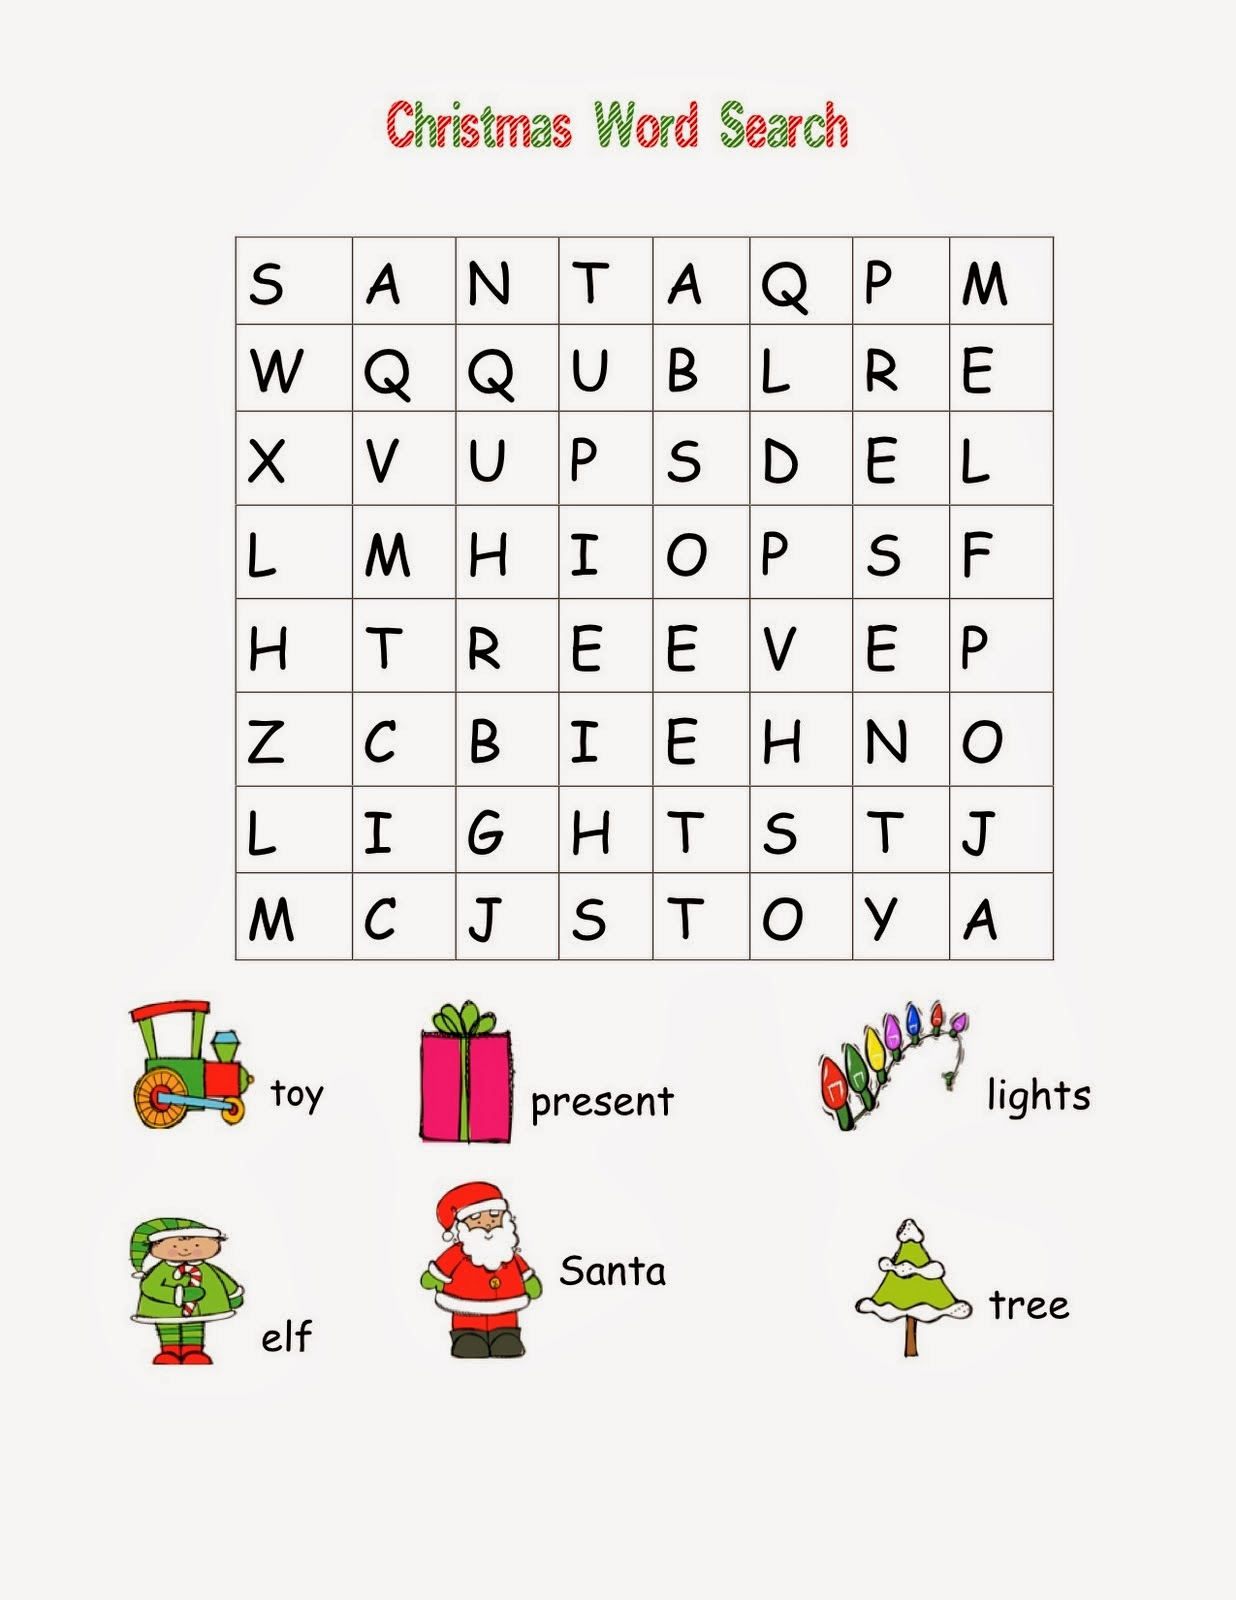 Easy Christmas Word Search HD Wallpapers: HD Wallpapers Blog Provides Wide Range Easy Christmas Word Search HD Wallpapers. We select a list of the Best Easy ...